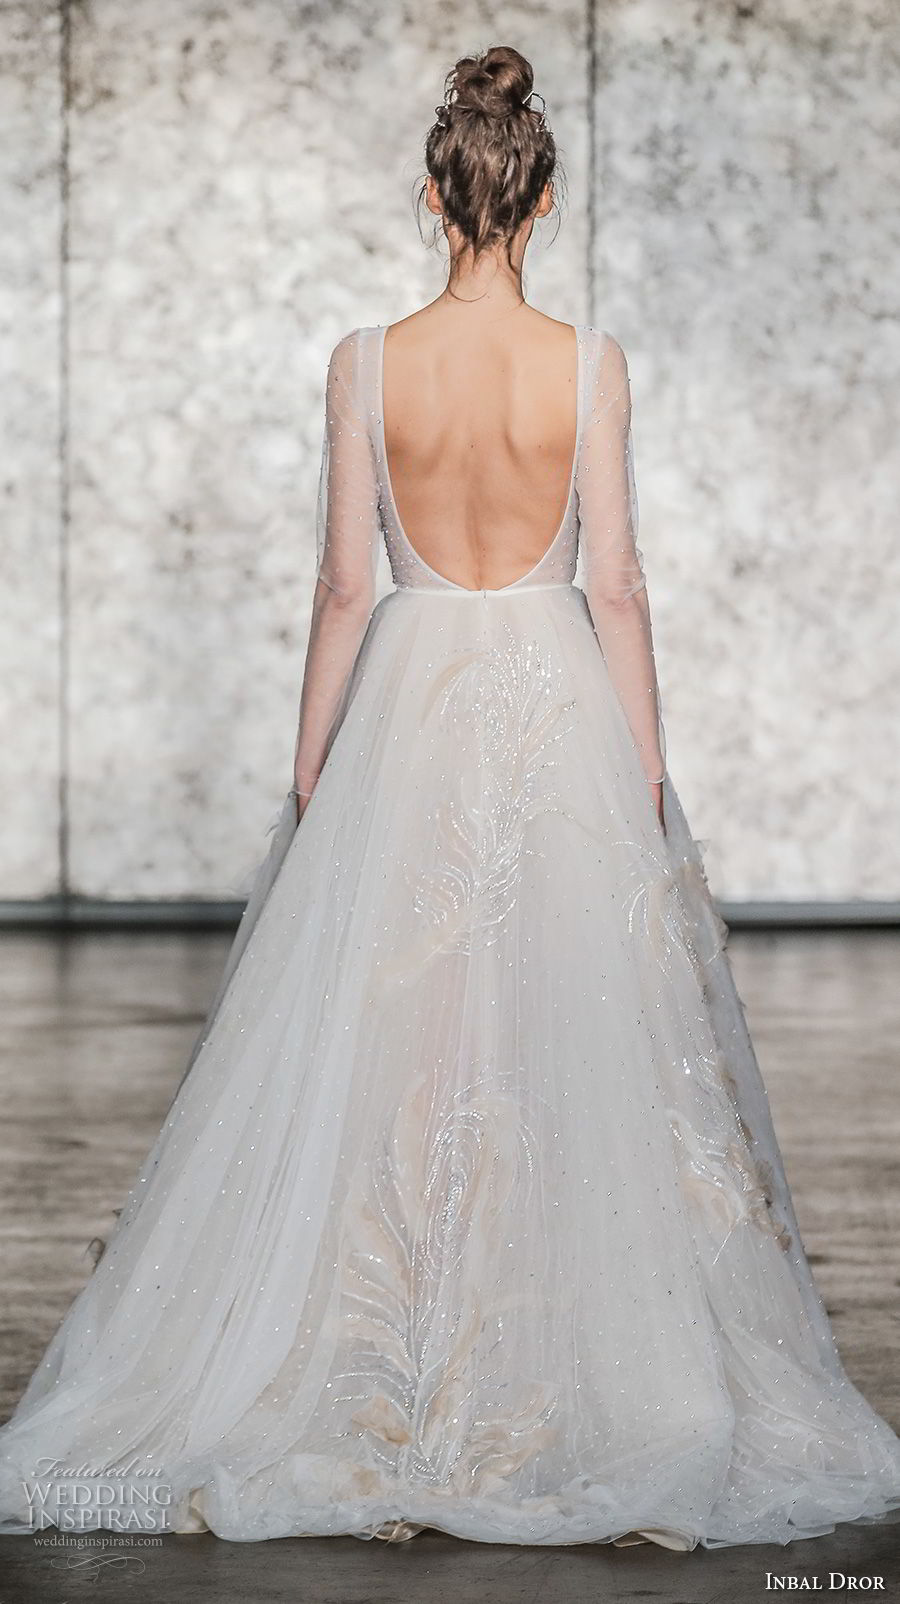 inbal dror fall 2018 bridal long sleeves deep v neck light embellishment romantic a line wedding dress open scoop back chapel train (15) bv